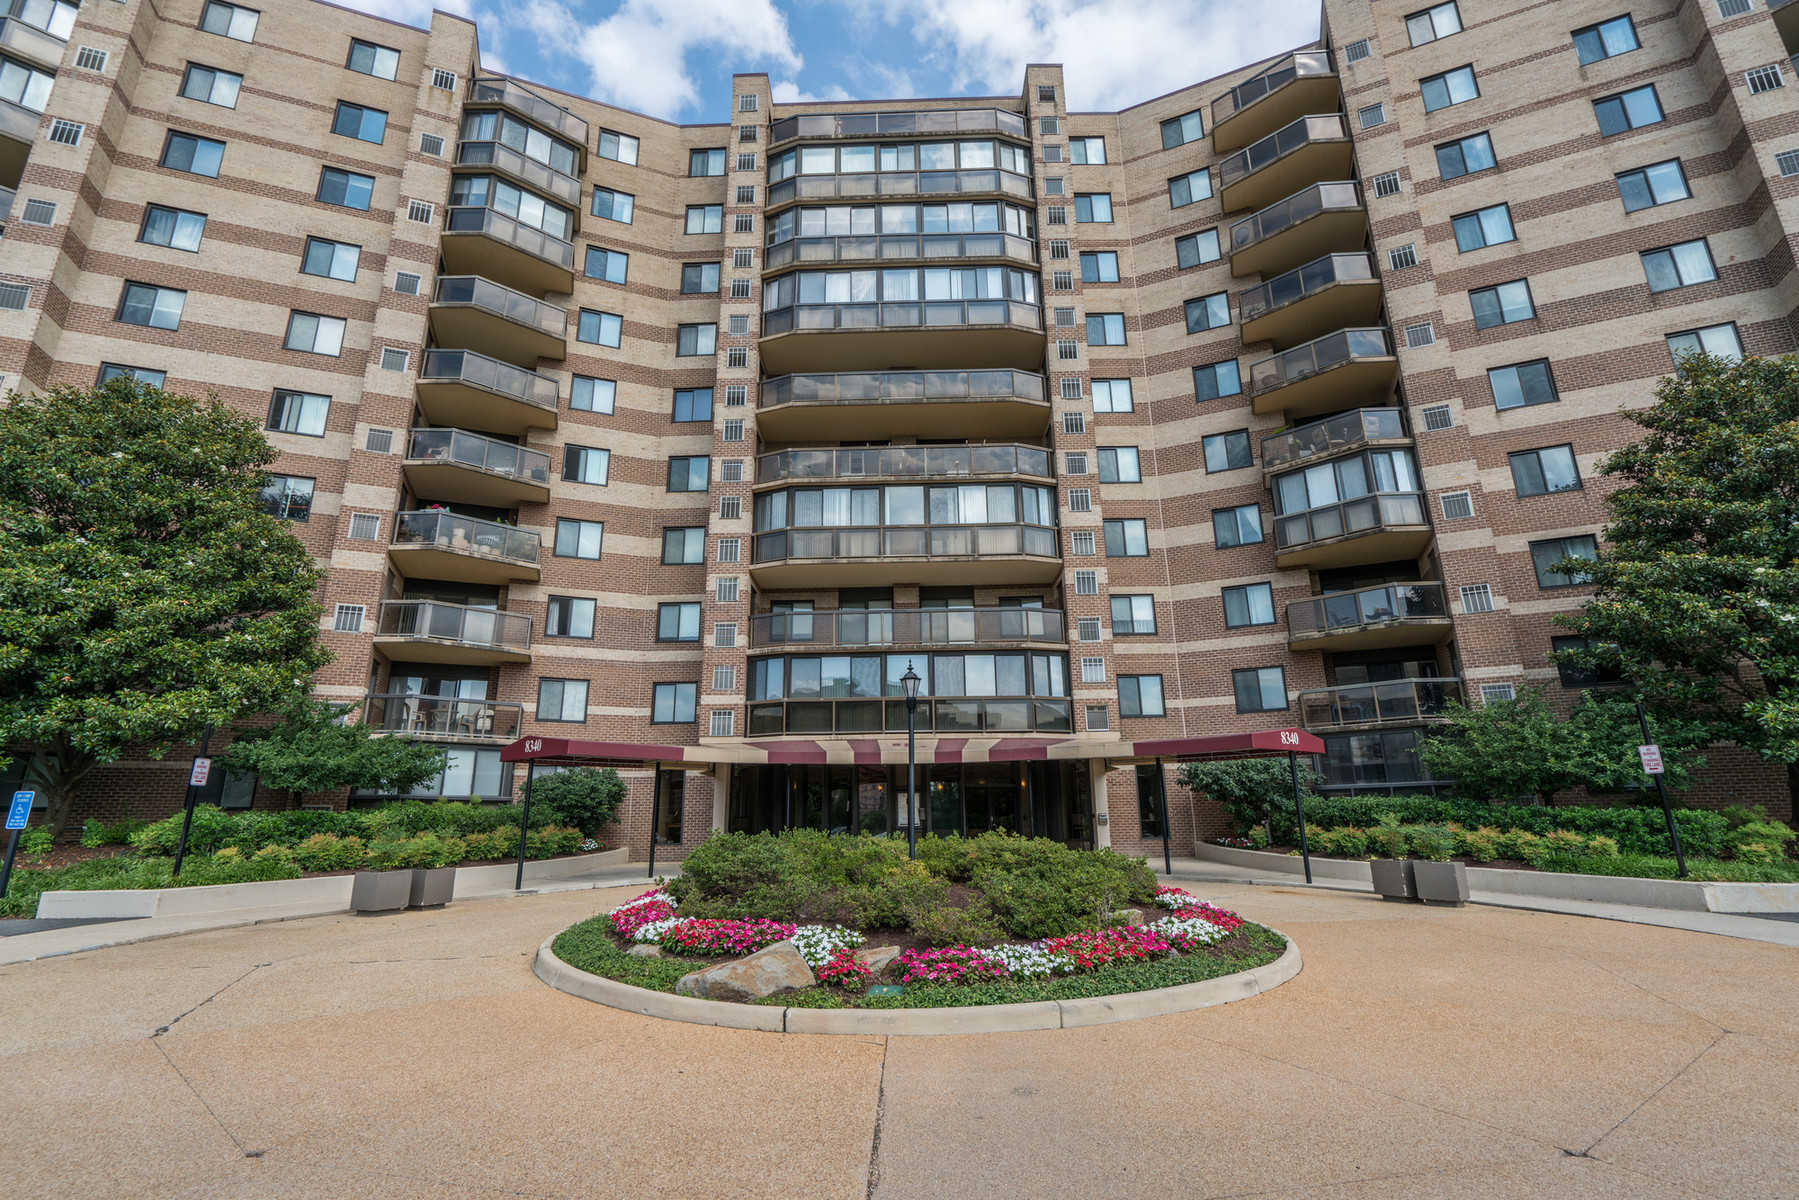 Condominium for Sale at The Rotonda 8340 Greensboro Dr 1021 McLean, Virginia, 22102 United States